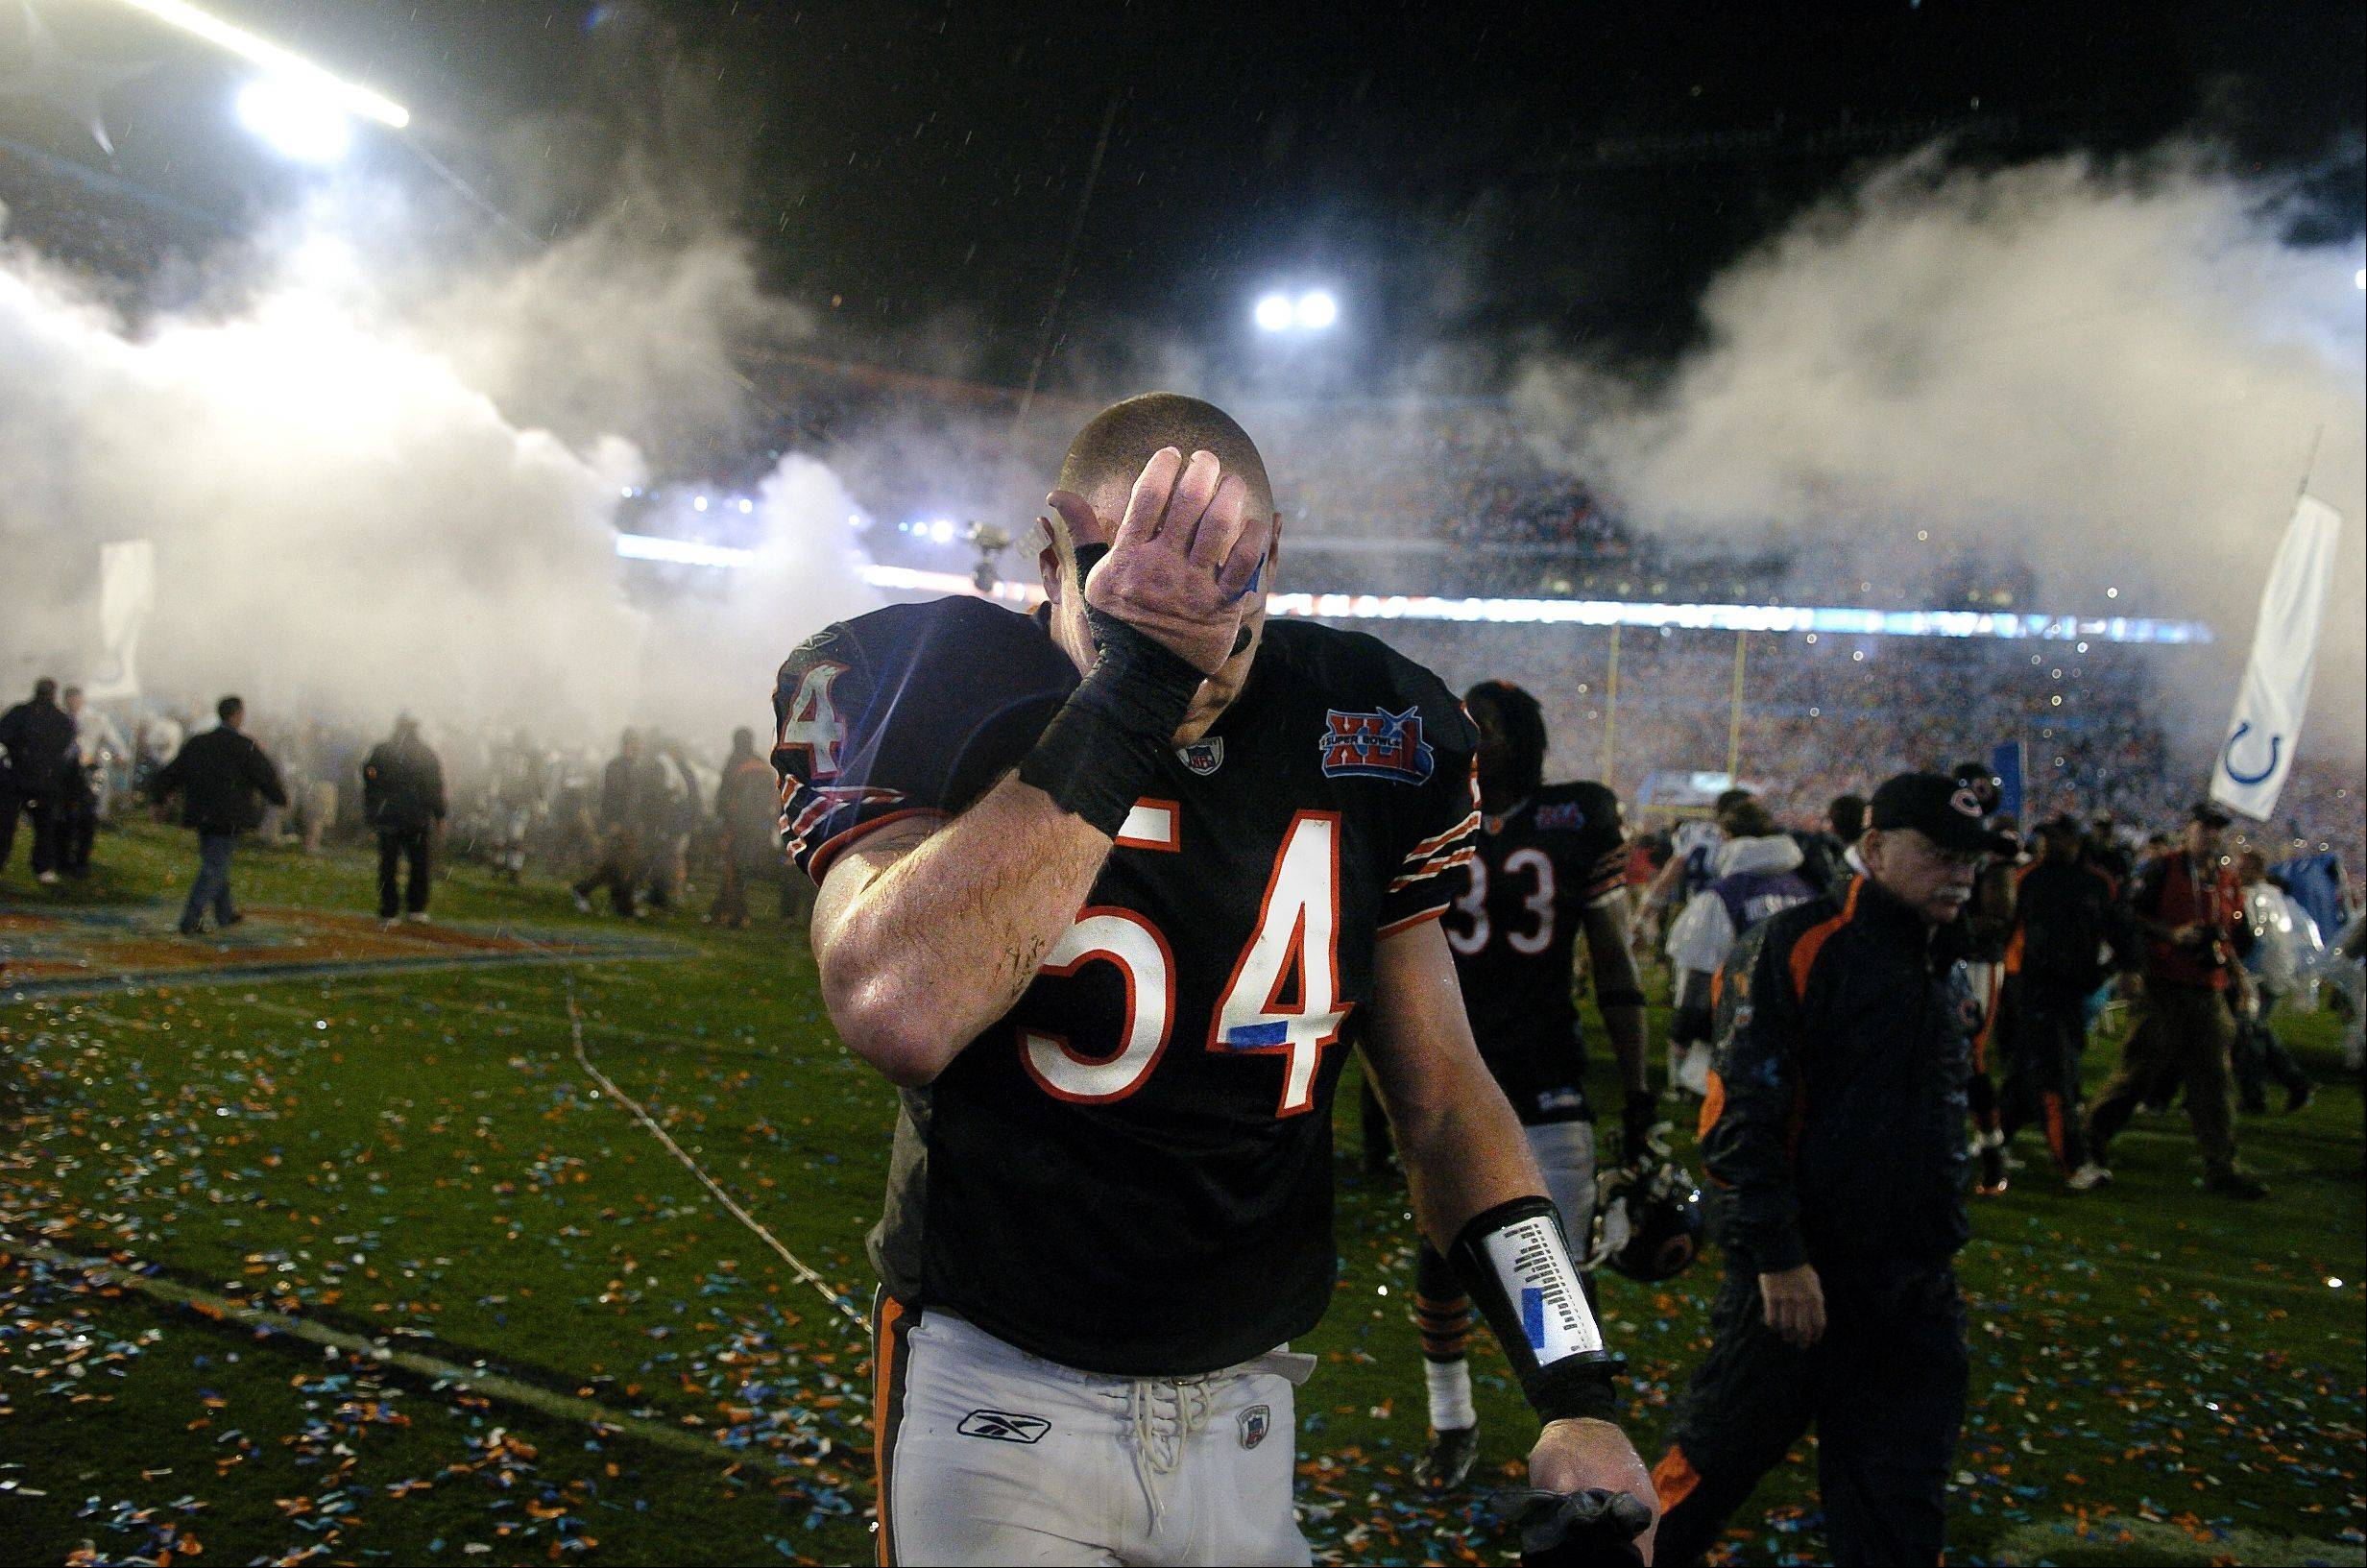 Super Bowl XLI Chicago Bears vs. Indianapolis Colts at Dolphin Stadium in Miami. Chicago Bears middle linebacker Brian Urlacher reacts to the loss.